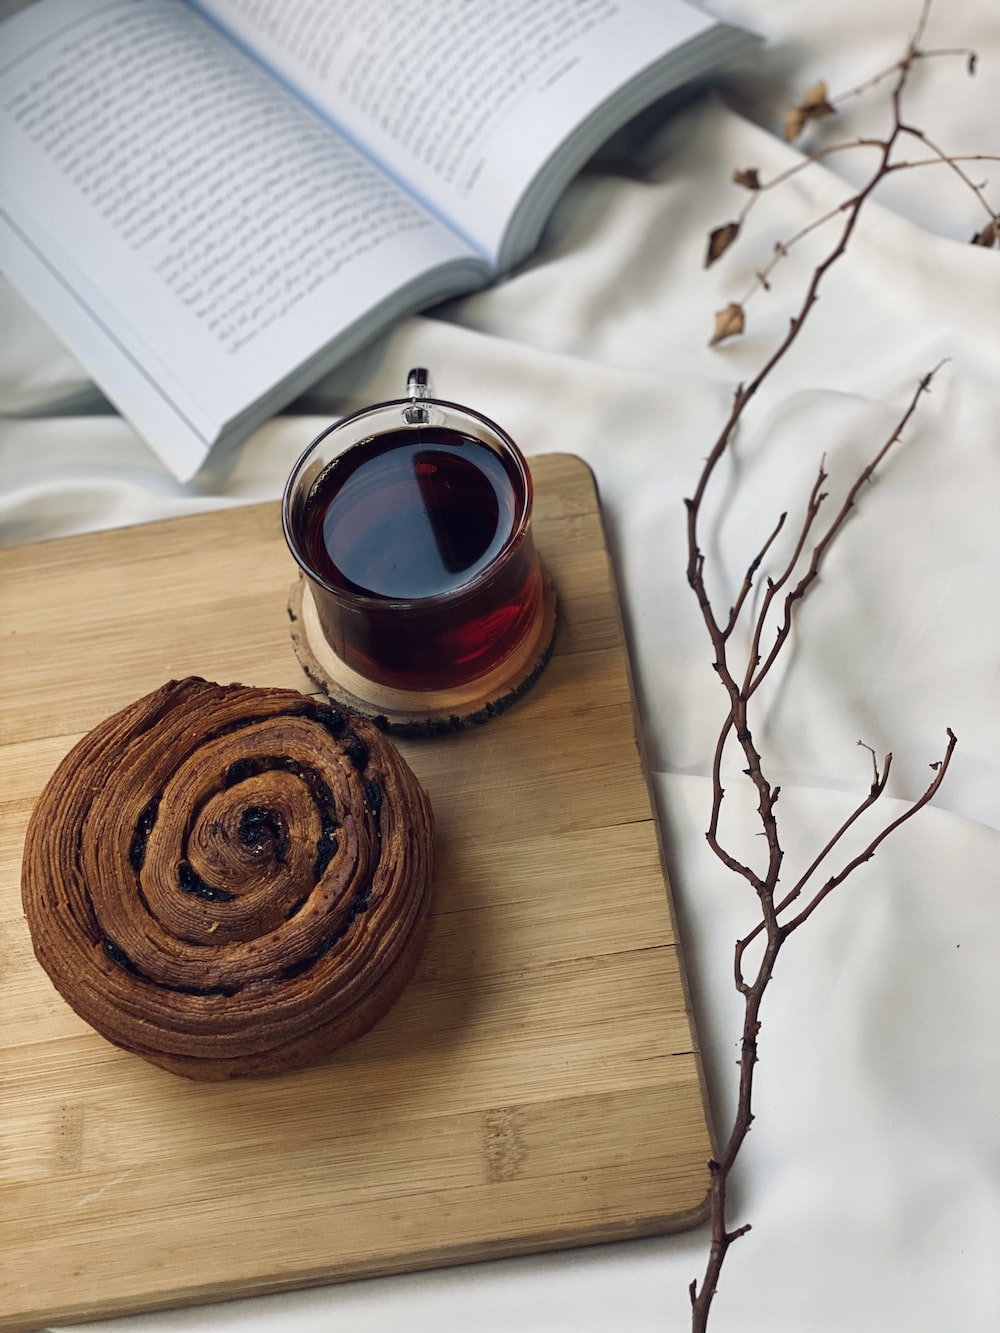 brown round pastry on brown wooden table